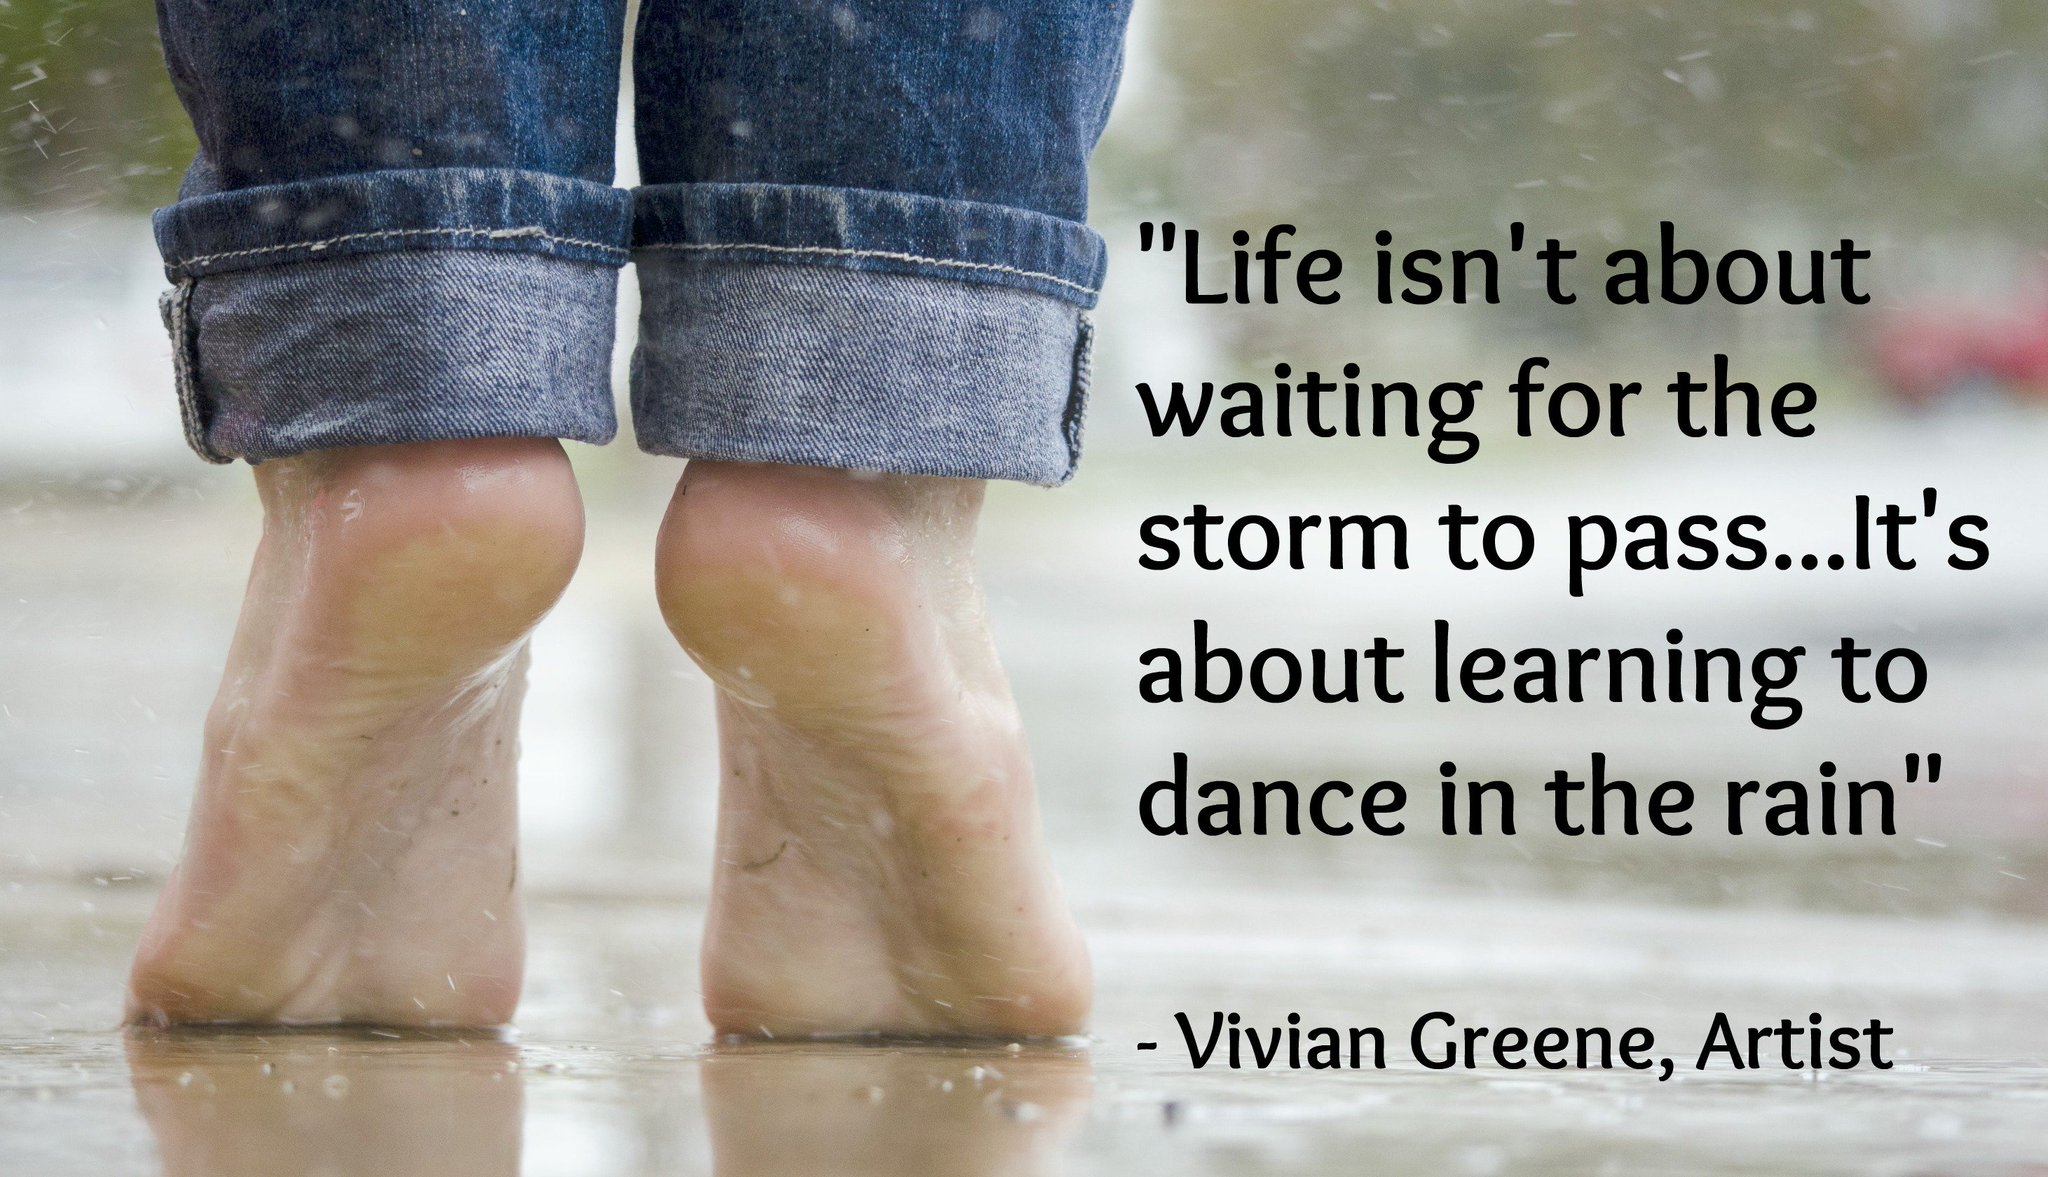 """""""Life isn't about waiting for the storm to pass...It's about learning to dance in the rain"""" - Vivian Greene, Artist @RichLouv@ChildrenNature https://t.co/7RVixm8ghX"""